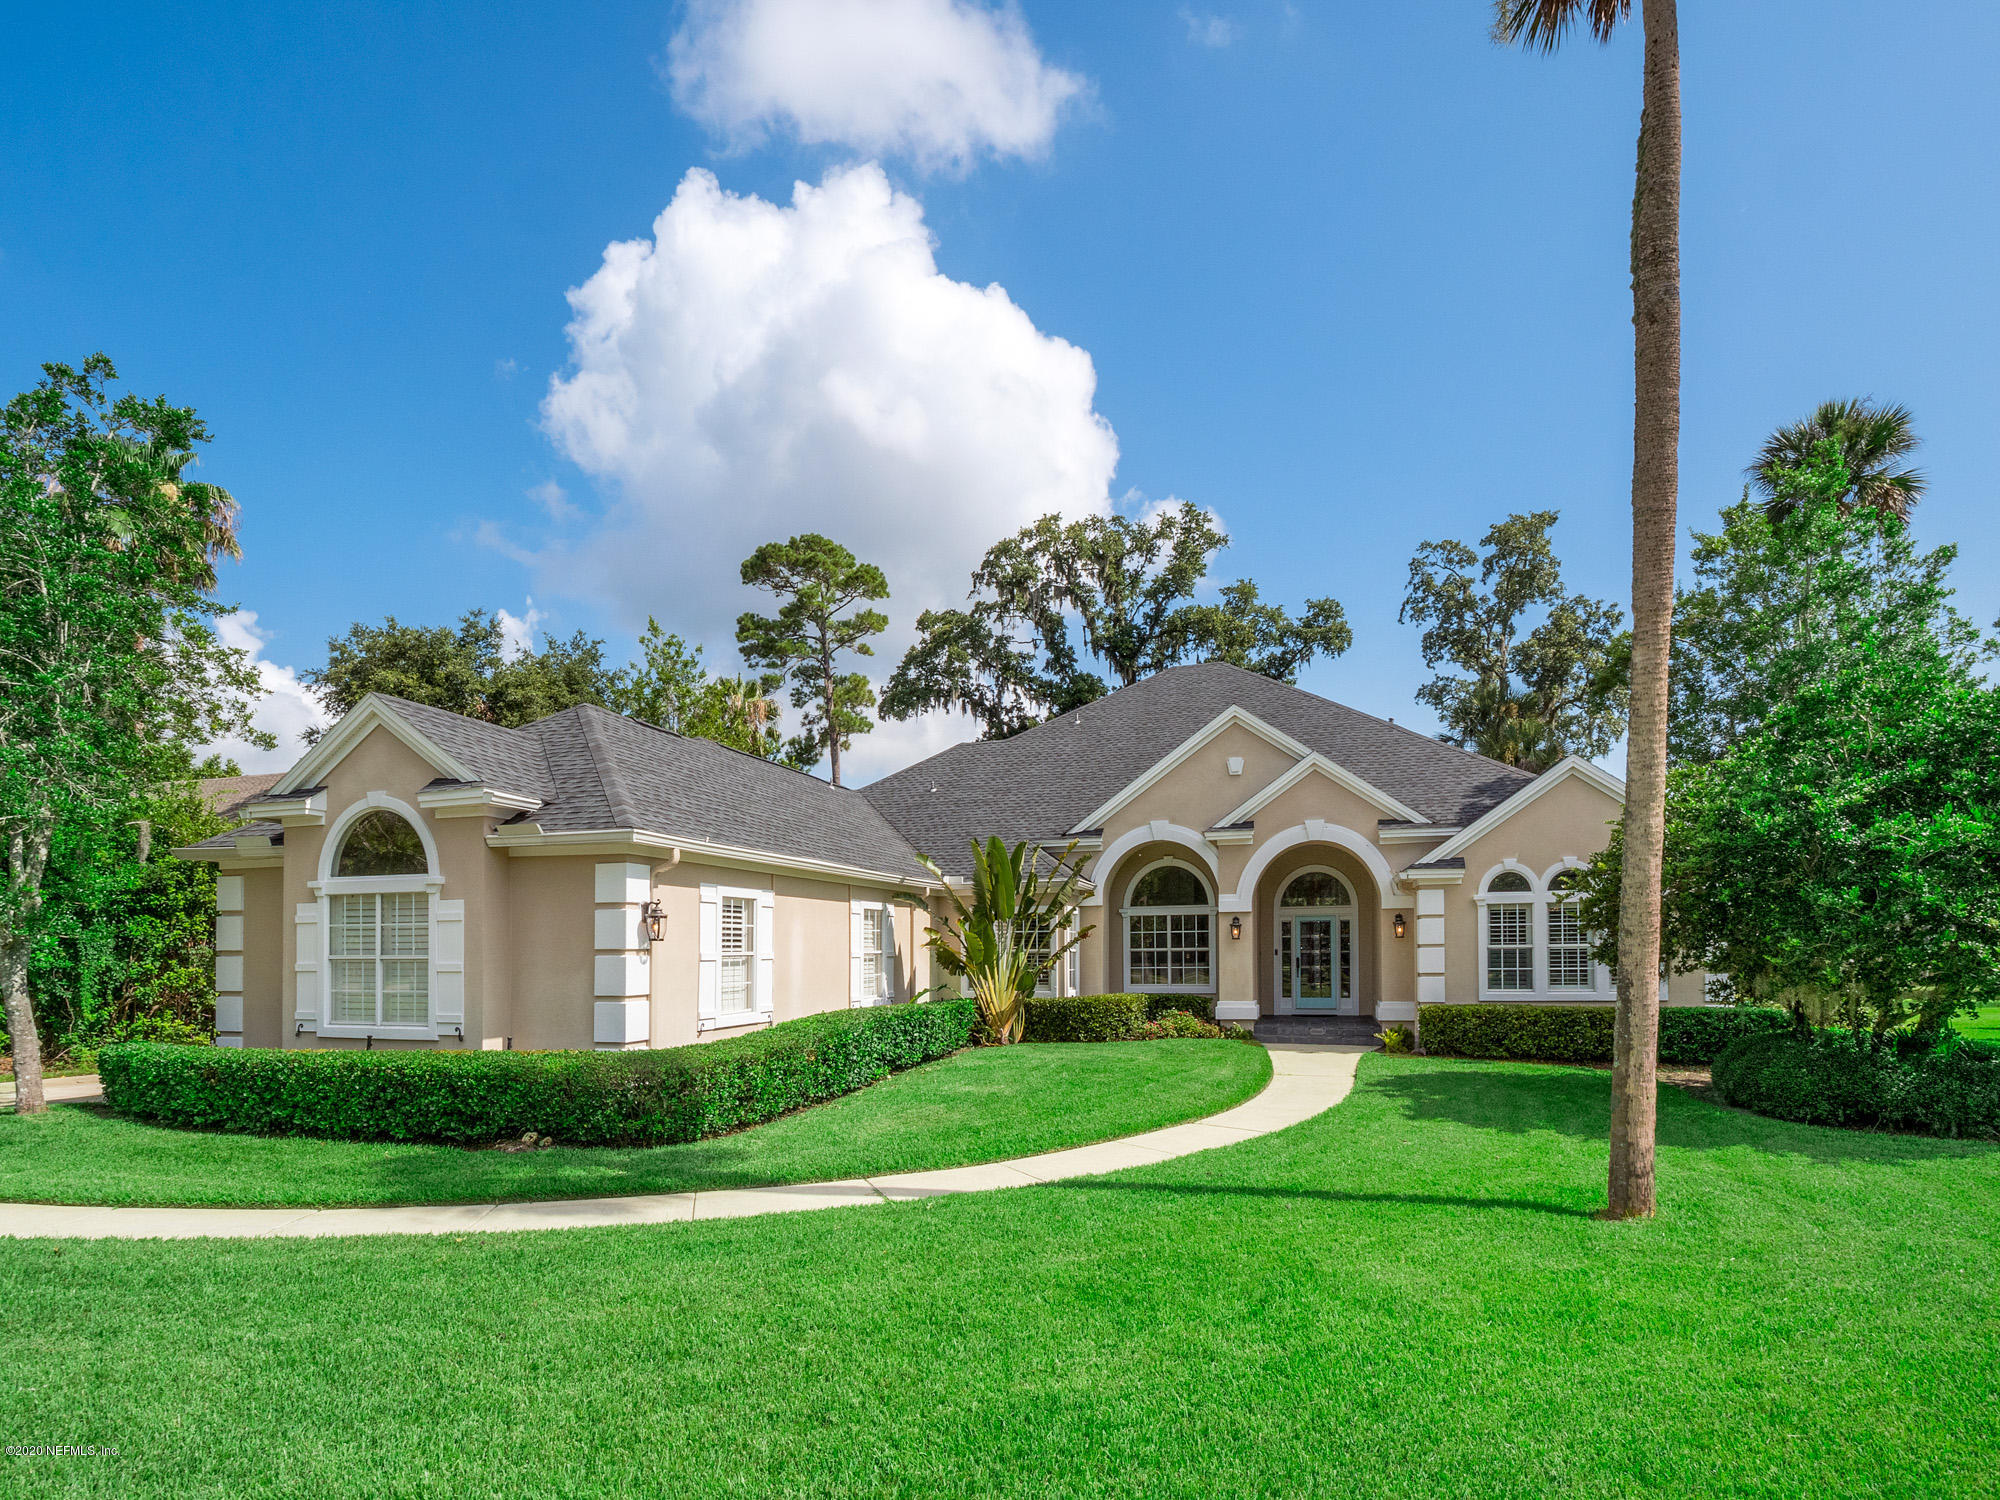 26181 MARSH LANDING, PONTE VEDRA BEACH, FLORIDA 32082, 5 Bedrooms Bedrooms, ,4 BathroomsBathrooms,Residential,For sale,MARSH LANDING,1061640